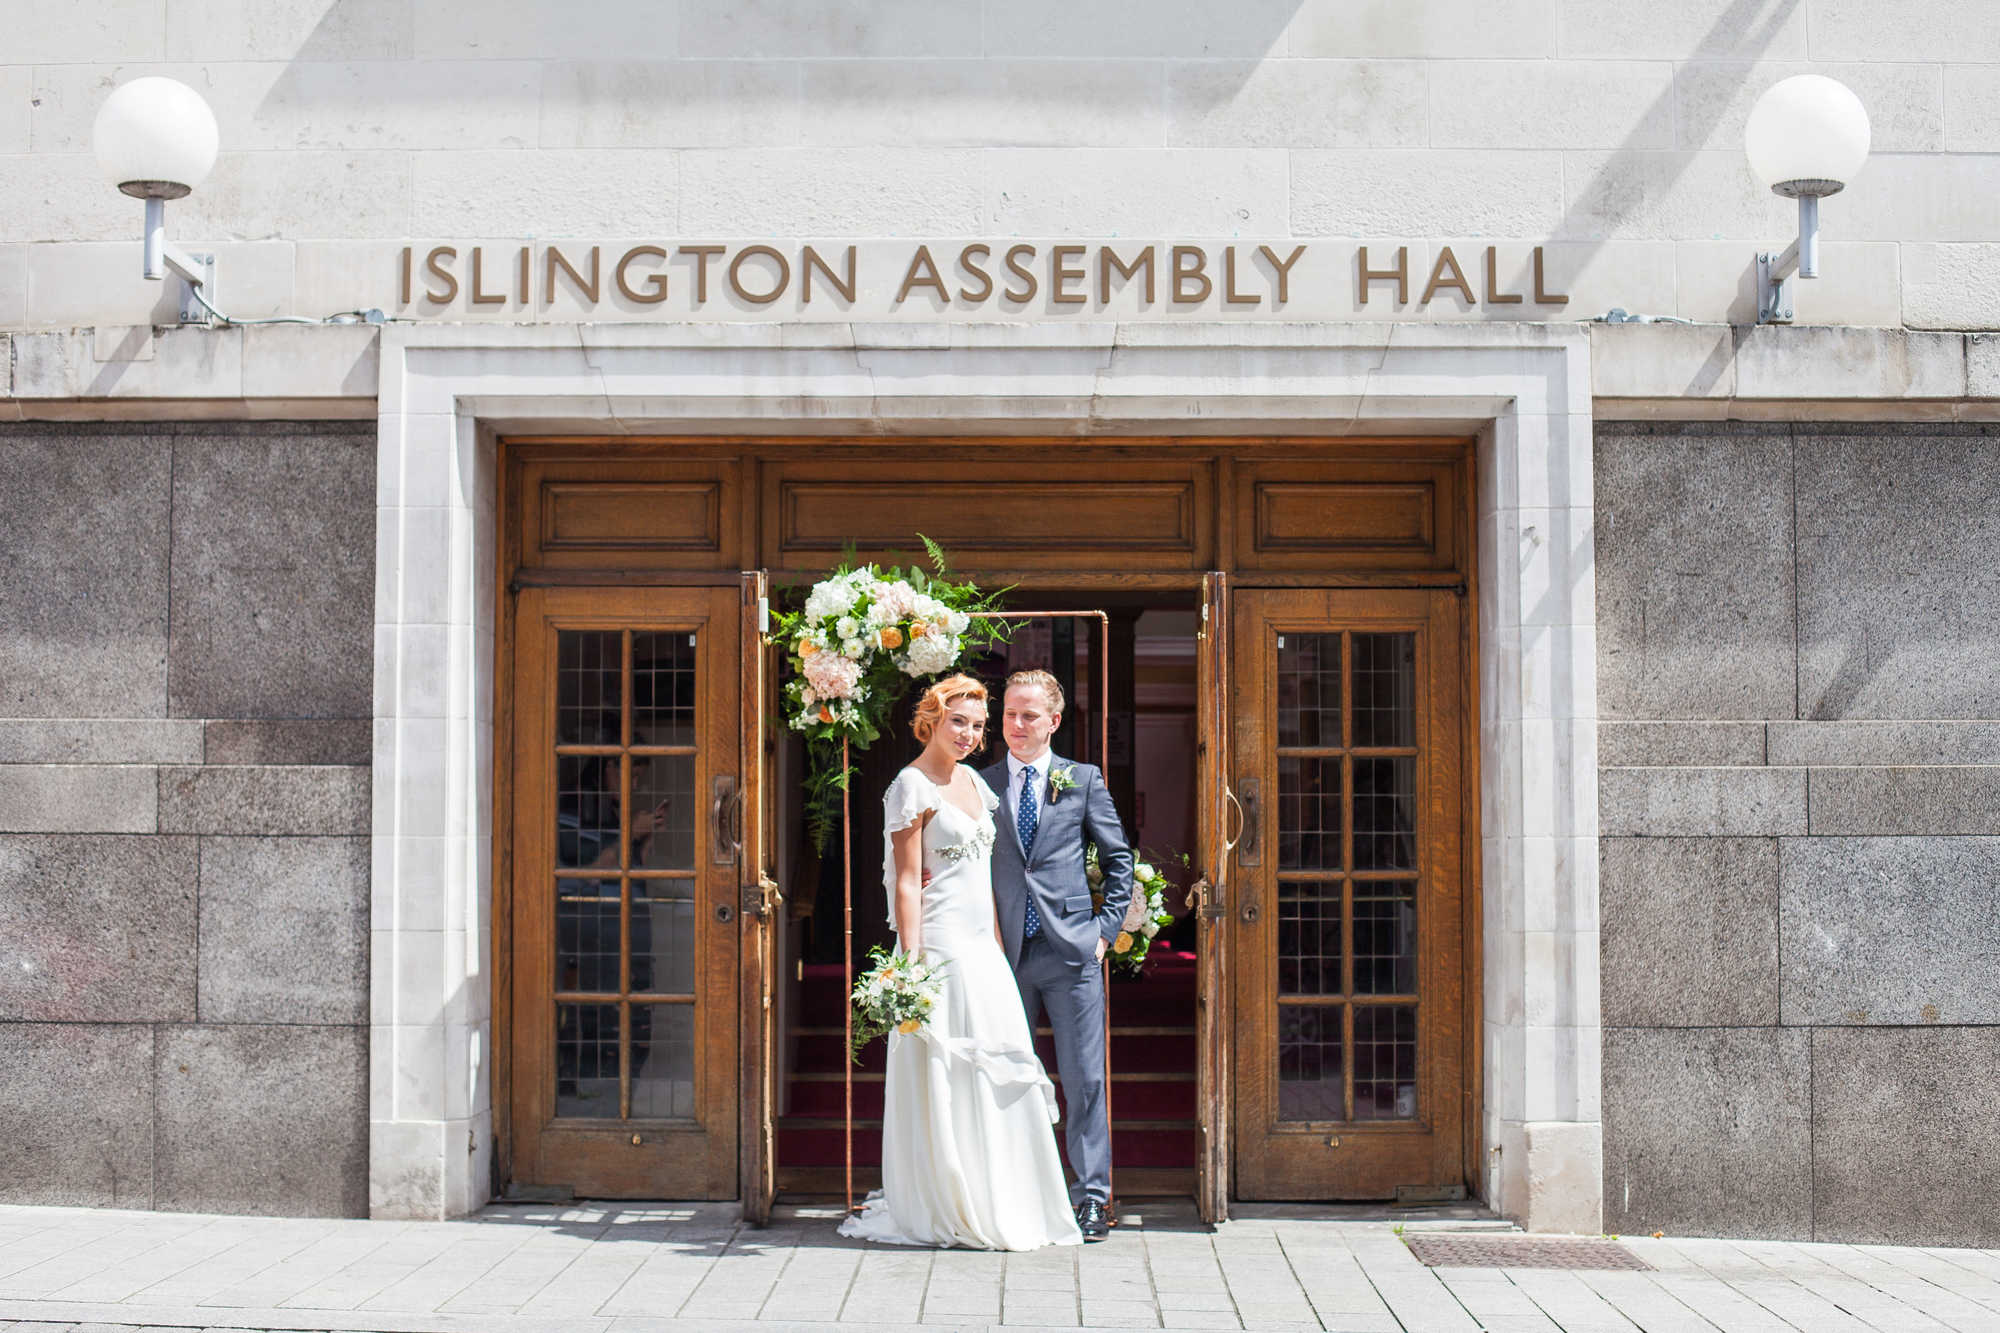 Islington Assembly Hall - Wedding Venues in Greater London